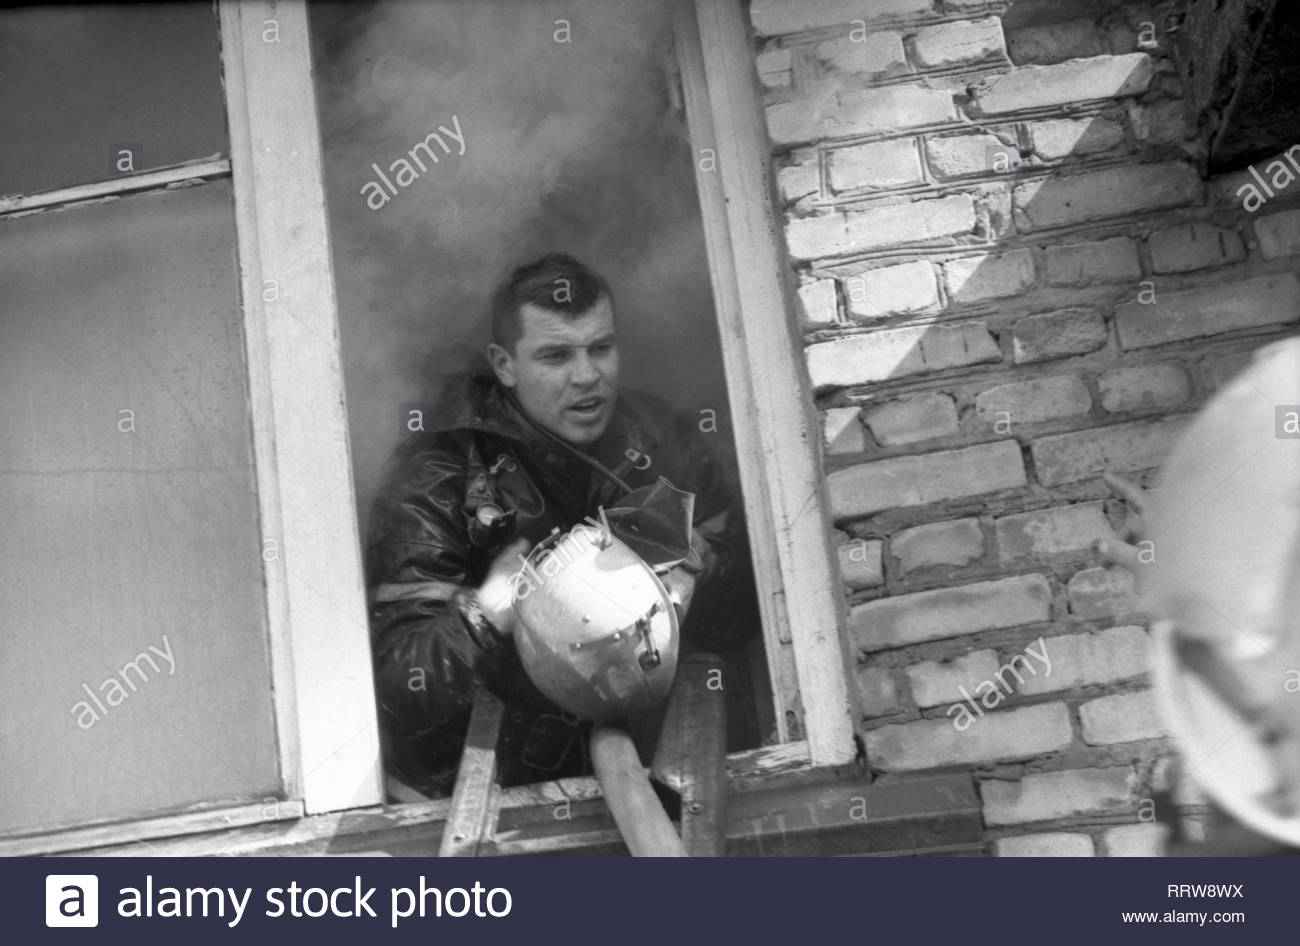 It is fire in the apartment. Firefighter in protective clothing is in the apartment where the fire occurred. The man looks out from open window. He is holding a helmet. Behind him is a dense shroud of smoke. The rescuer receives instructions of the management which is on the street. He saved people... Stock Photo